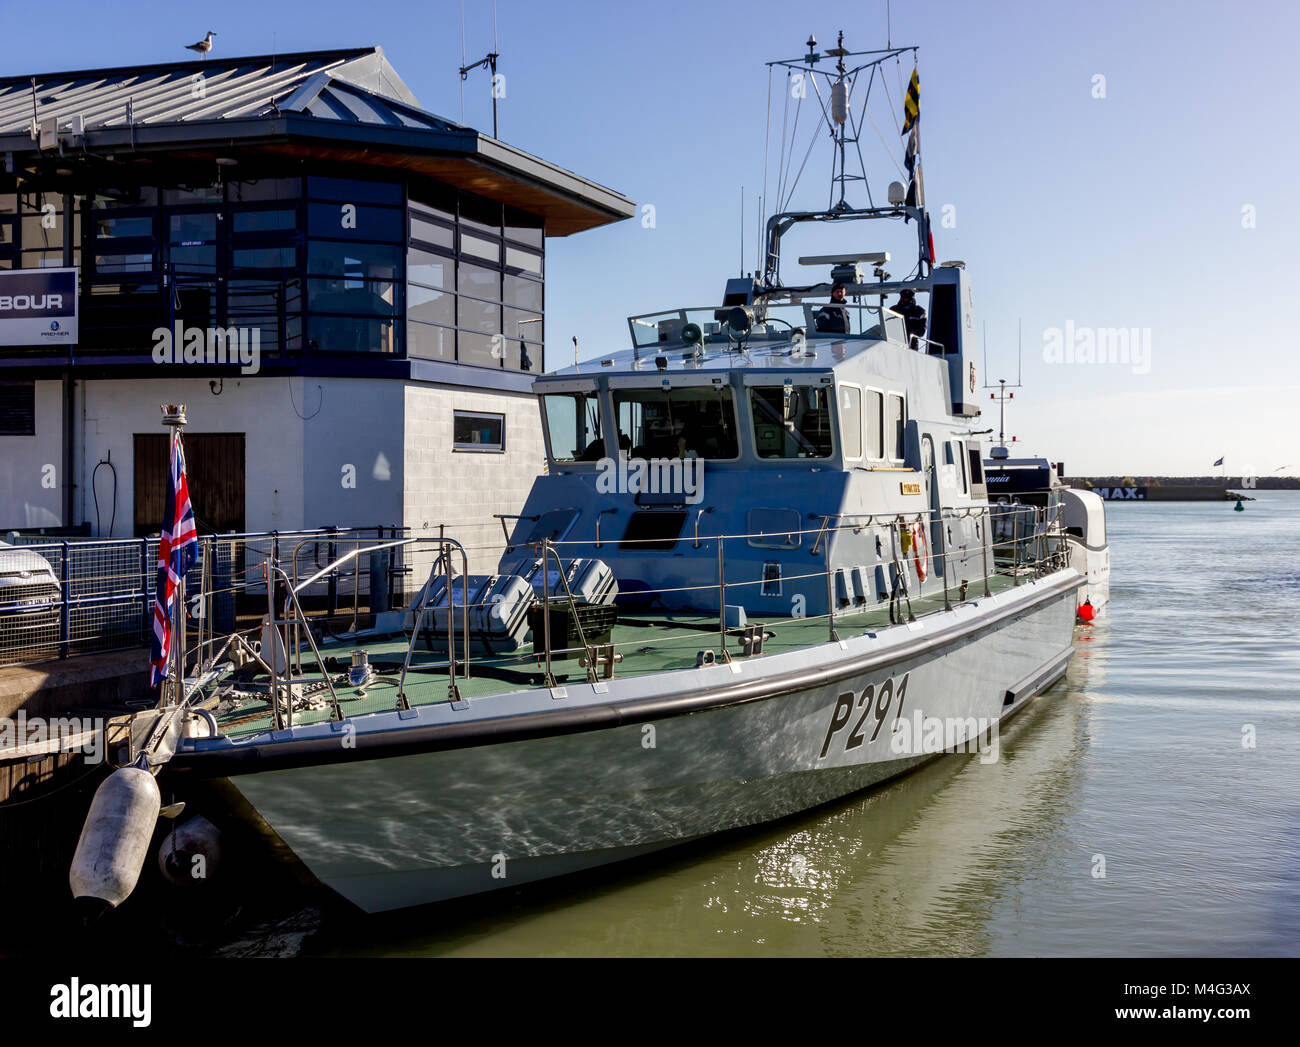 Sovereign Harbour, Eastbourne, UK. 16th February, 2018. HMS Puncher a Royal Navy Archer Class patrol vessel starts - Stock Image